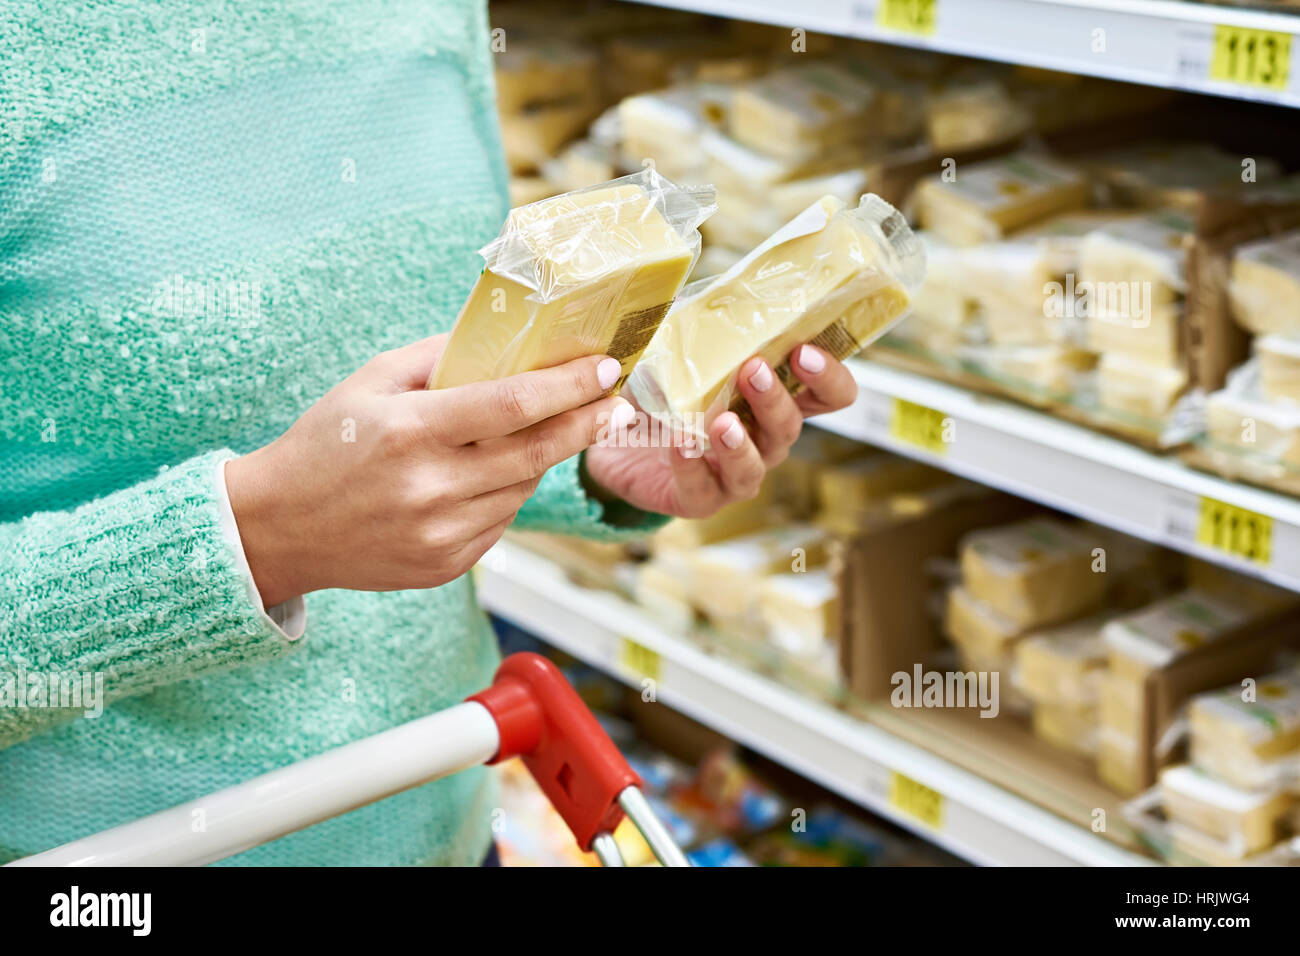 Buyer chooses the cheese in the store on the background of shelves with products - Stock Image